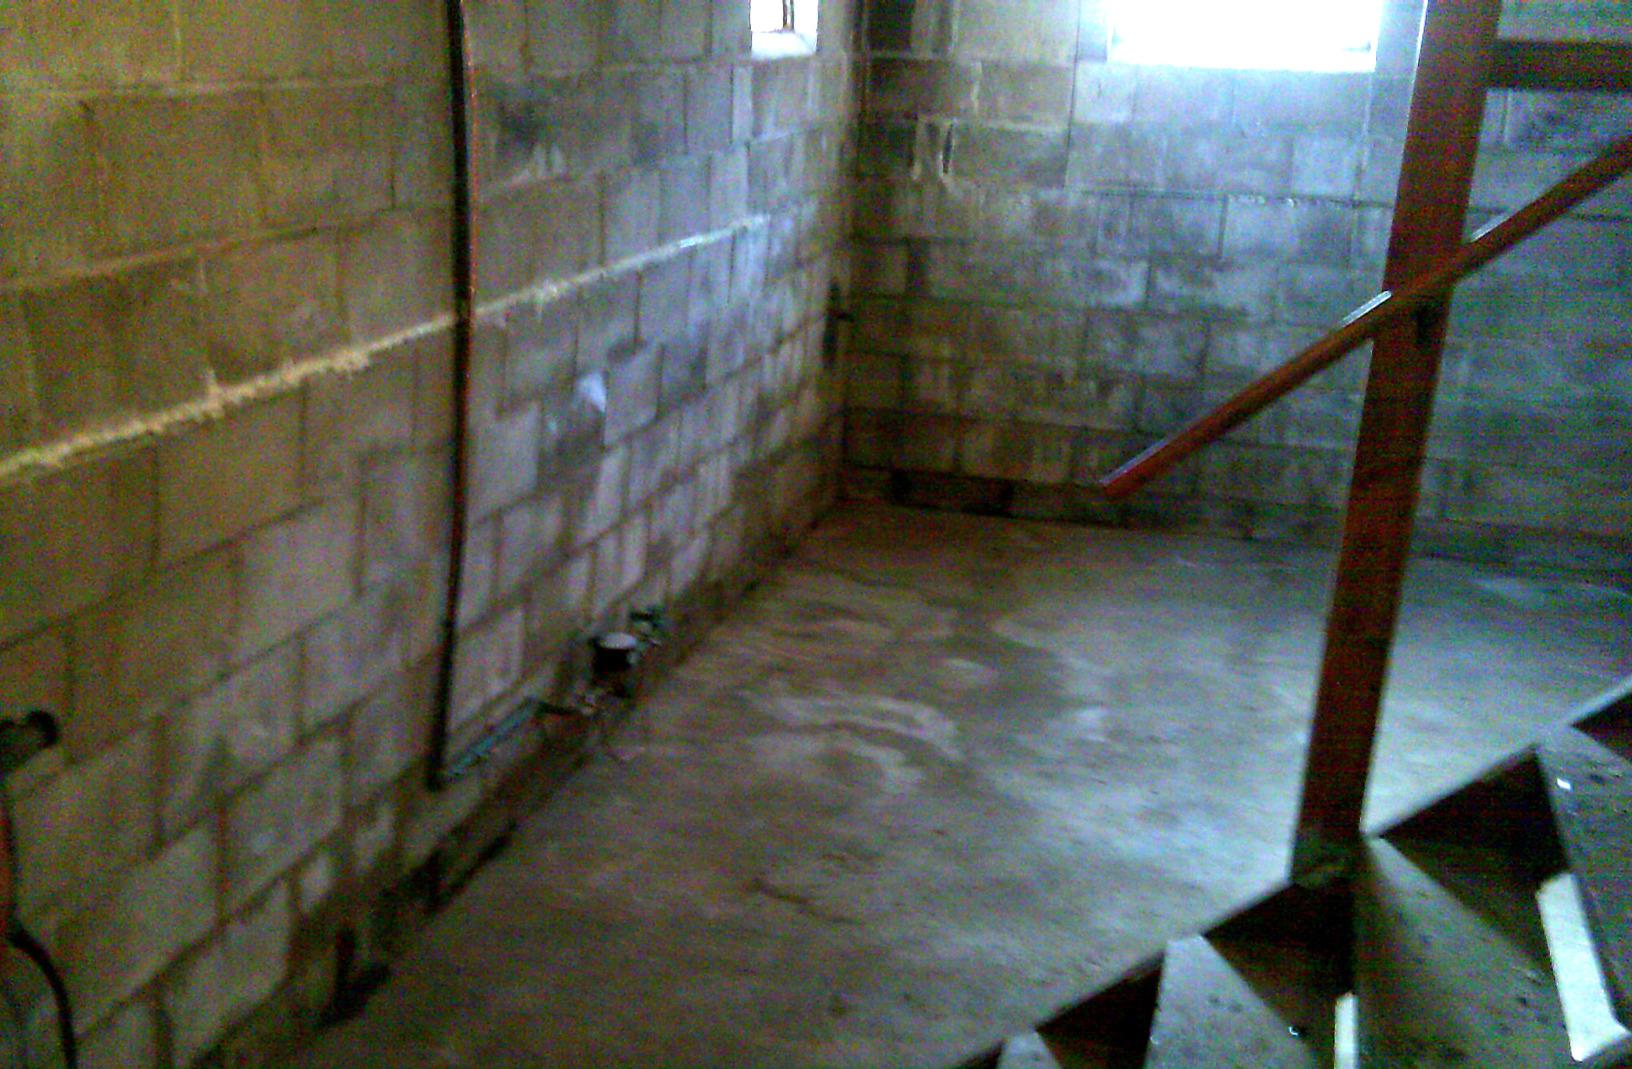 WAter Intrusion is evident especially where the walls meet the foundation floor.